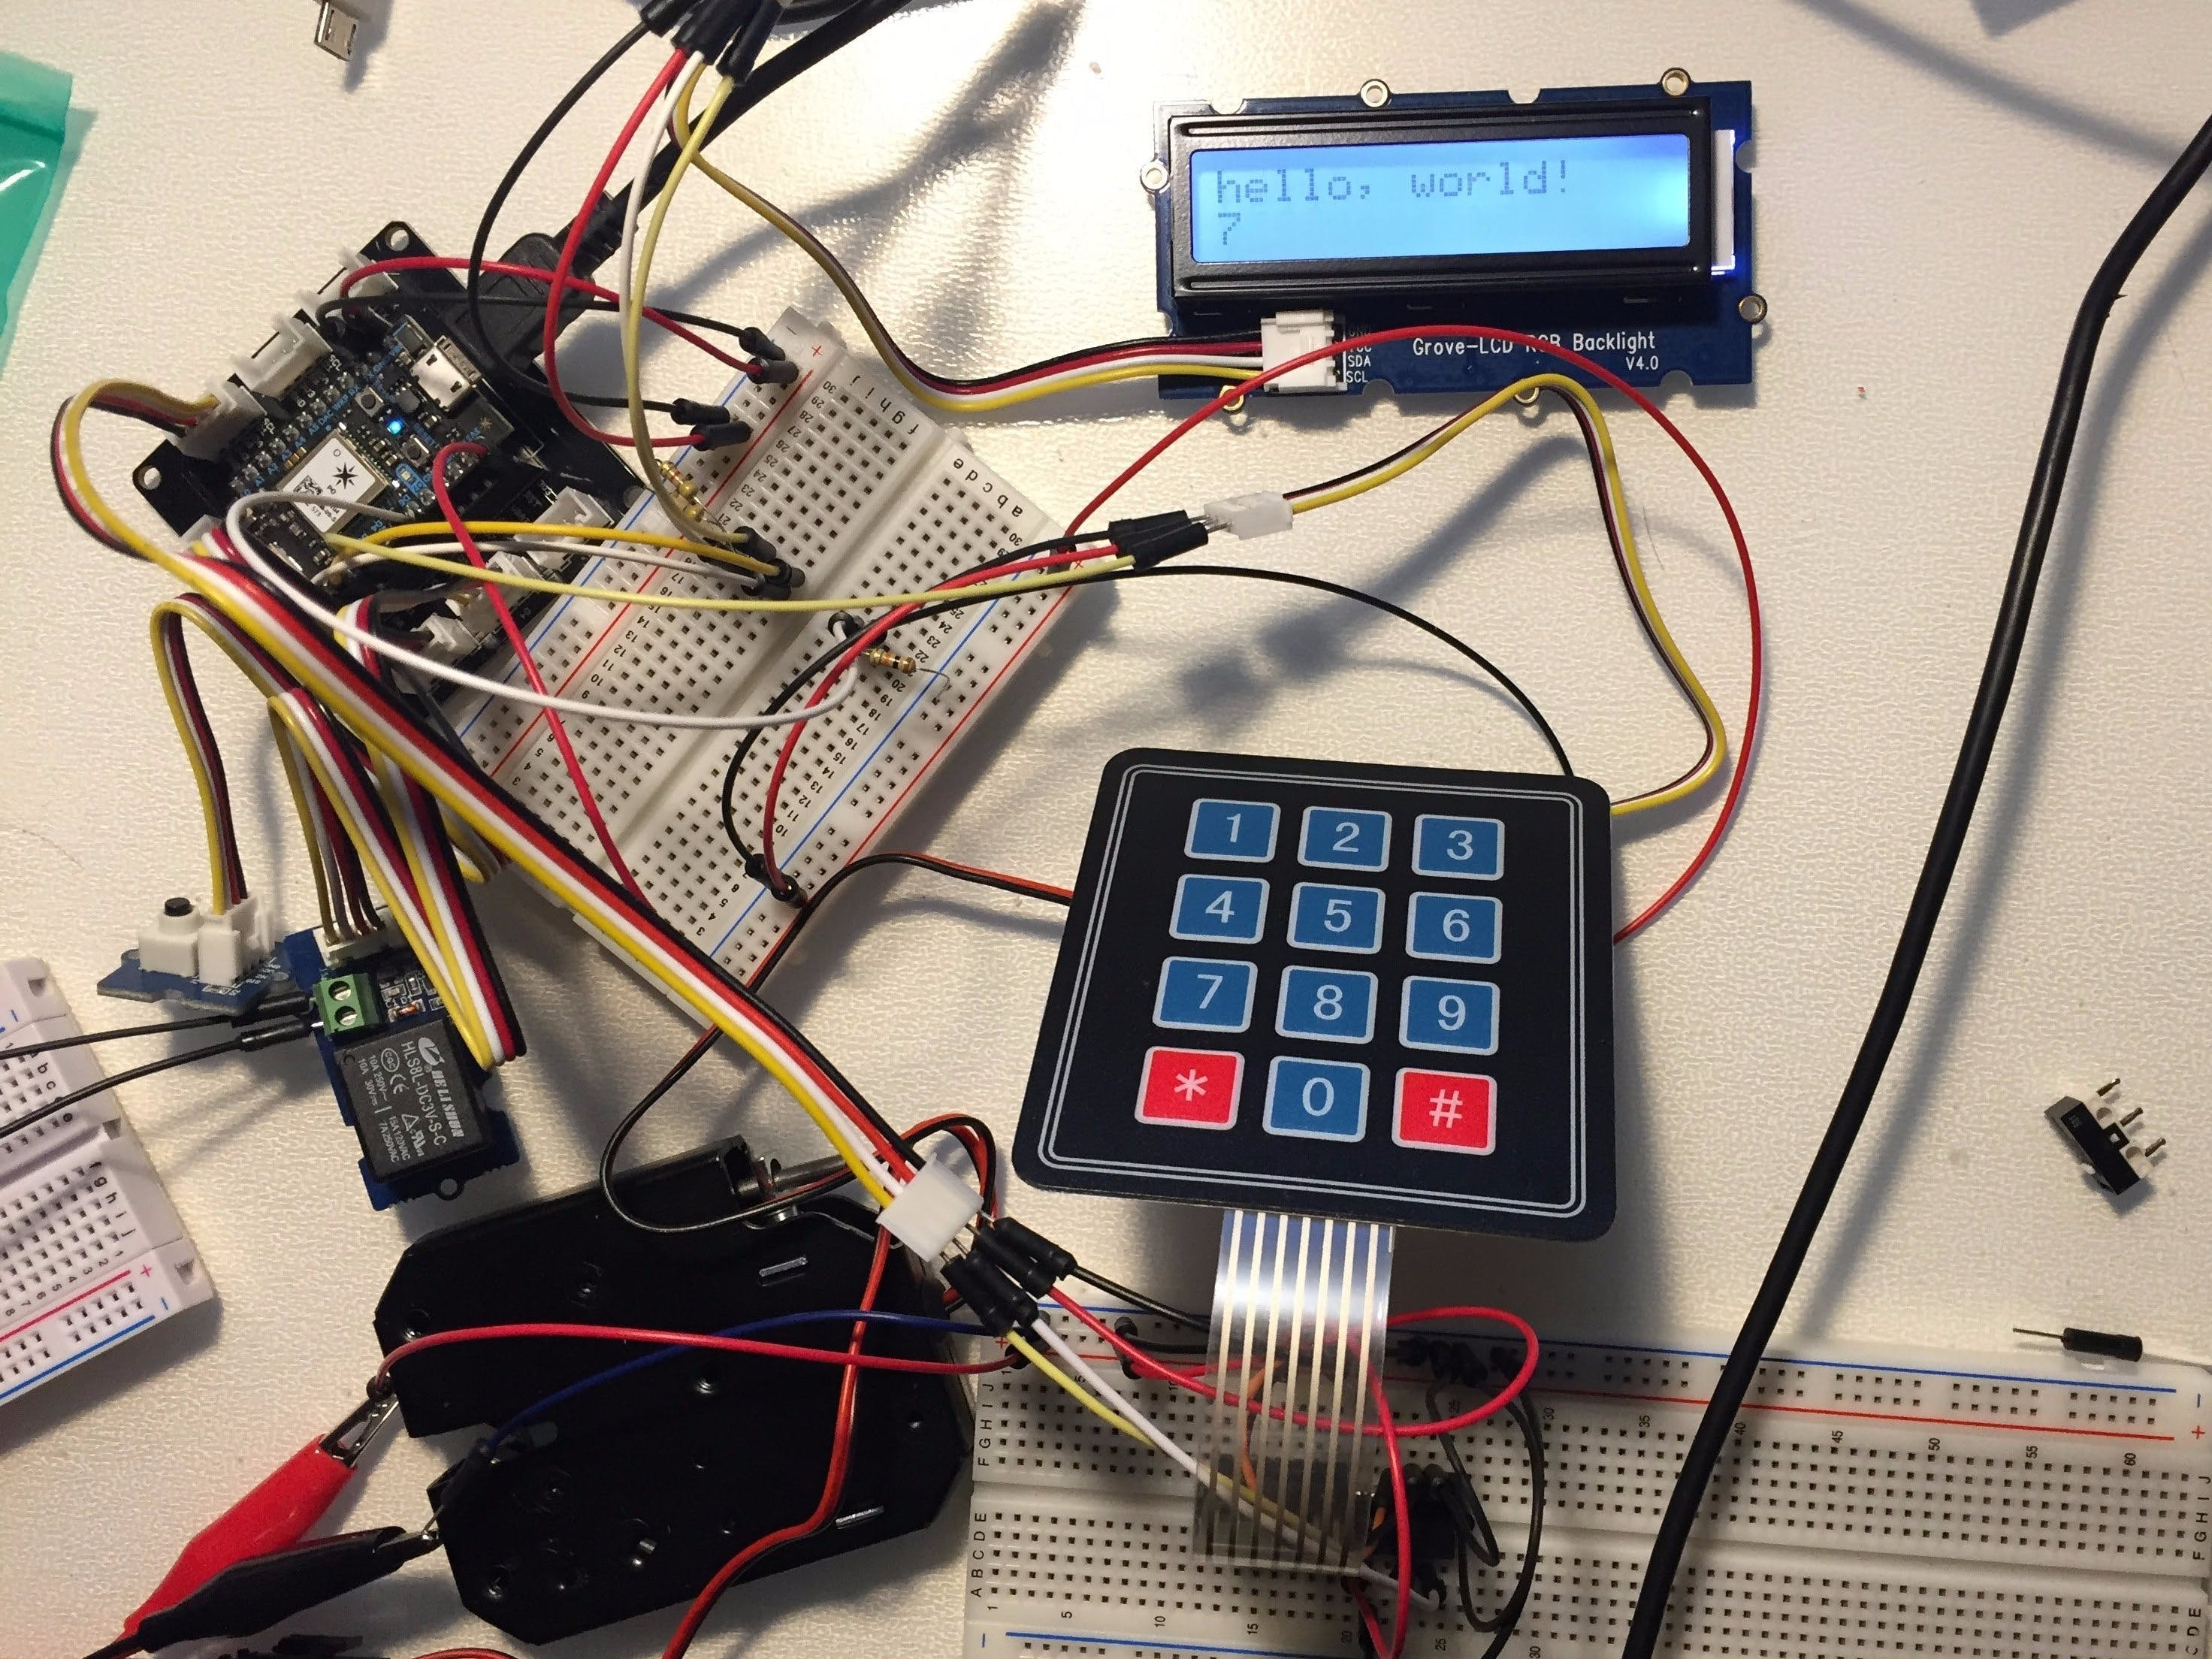 Particle Photon + Matrix Keypad + LCD using I2C